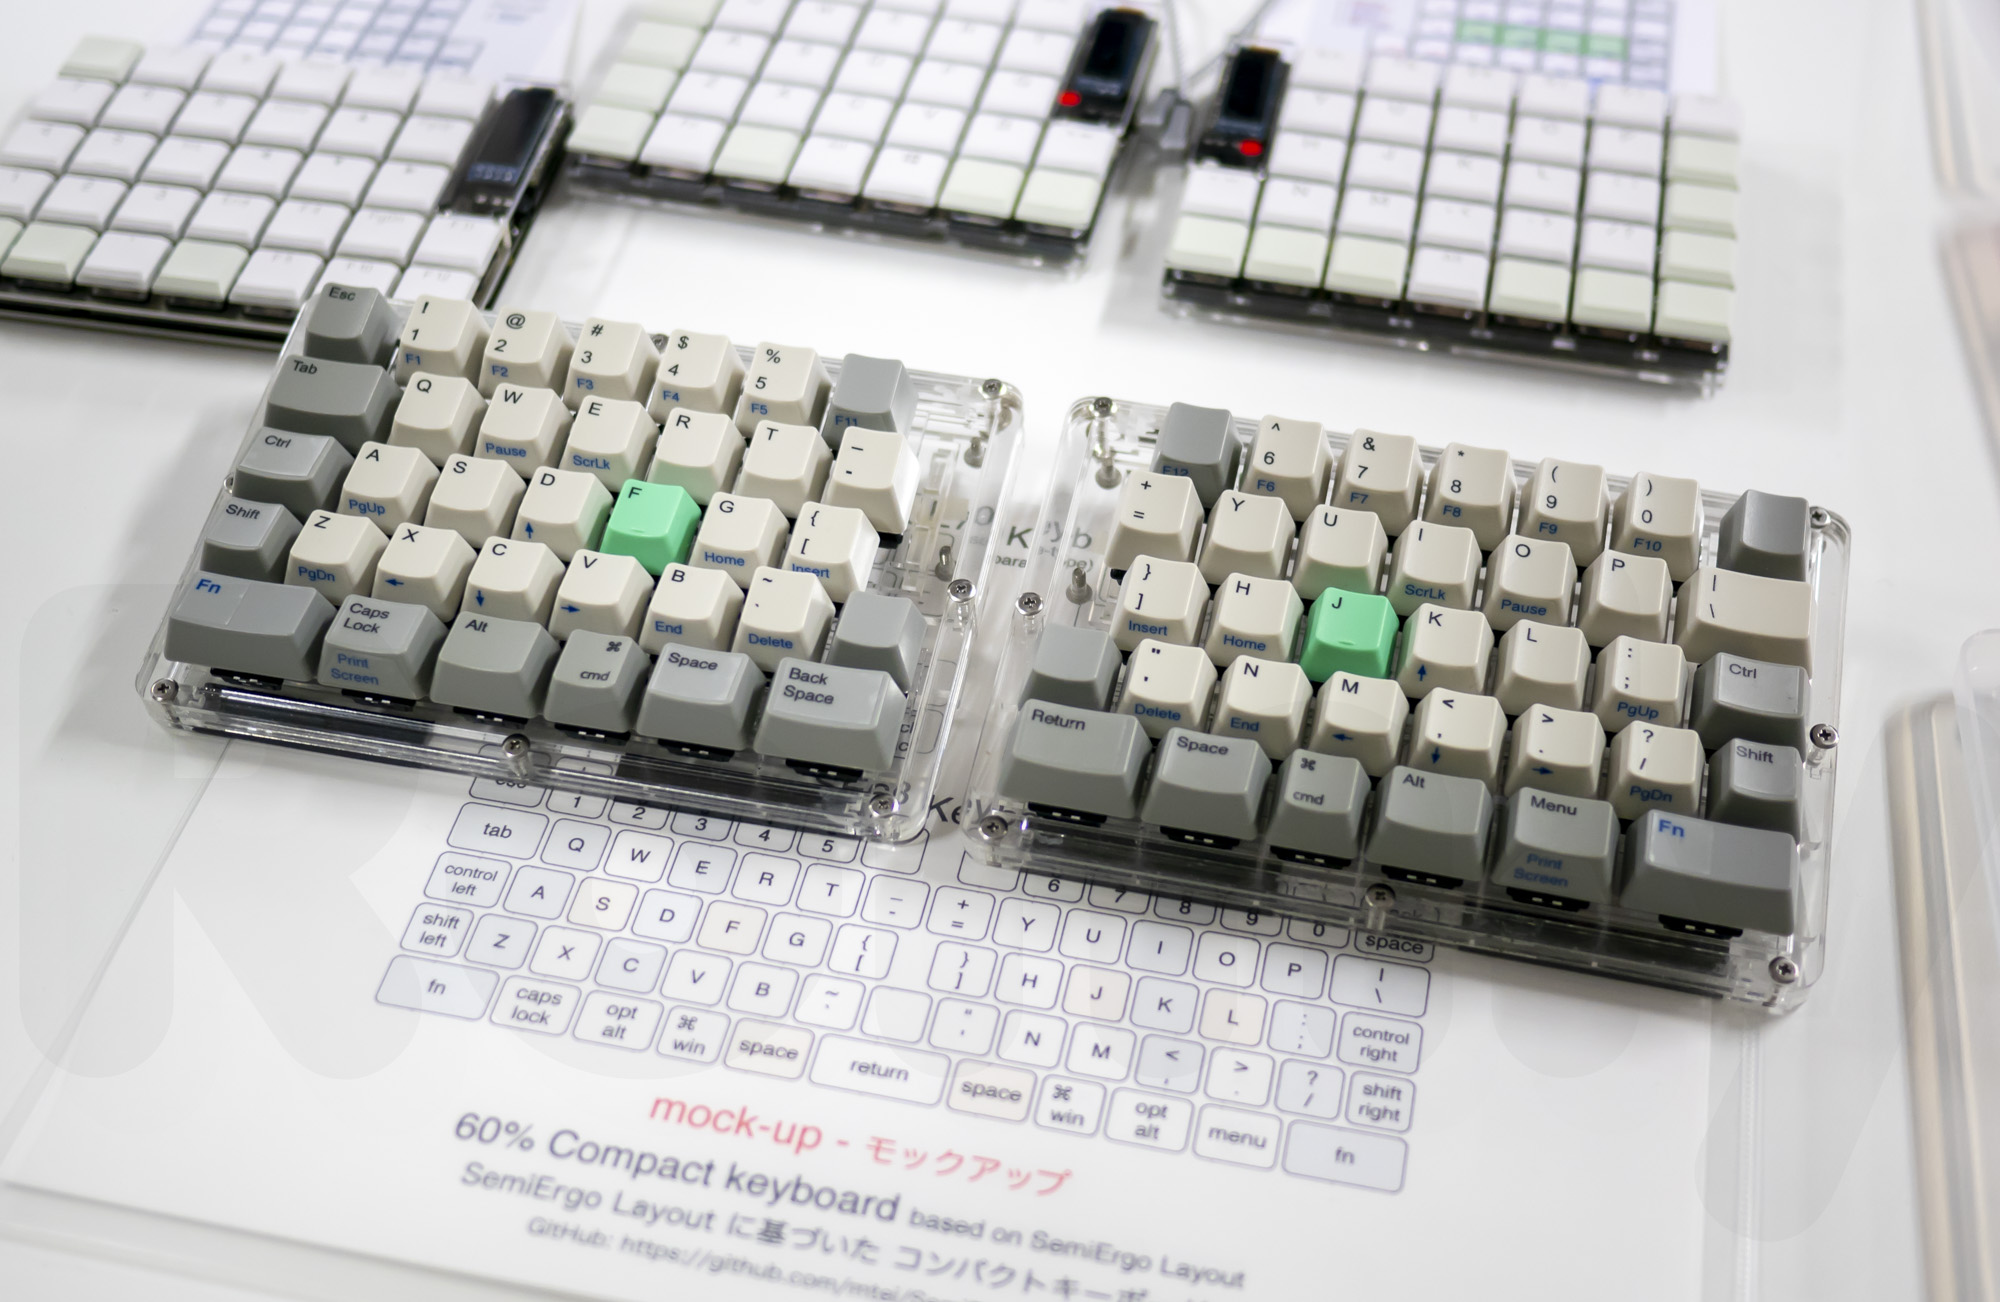 60% Compact Keyboard by m.tei